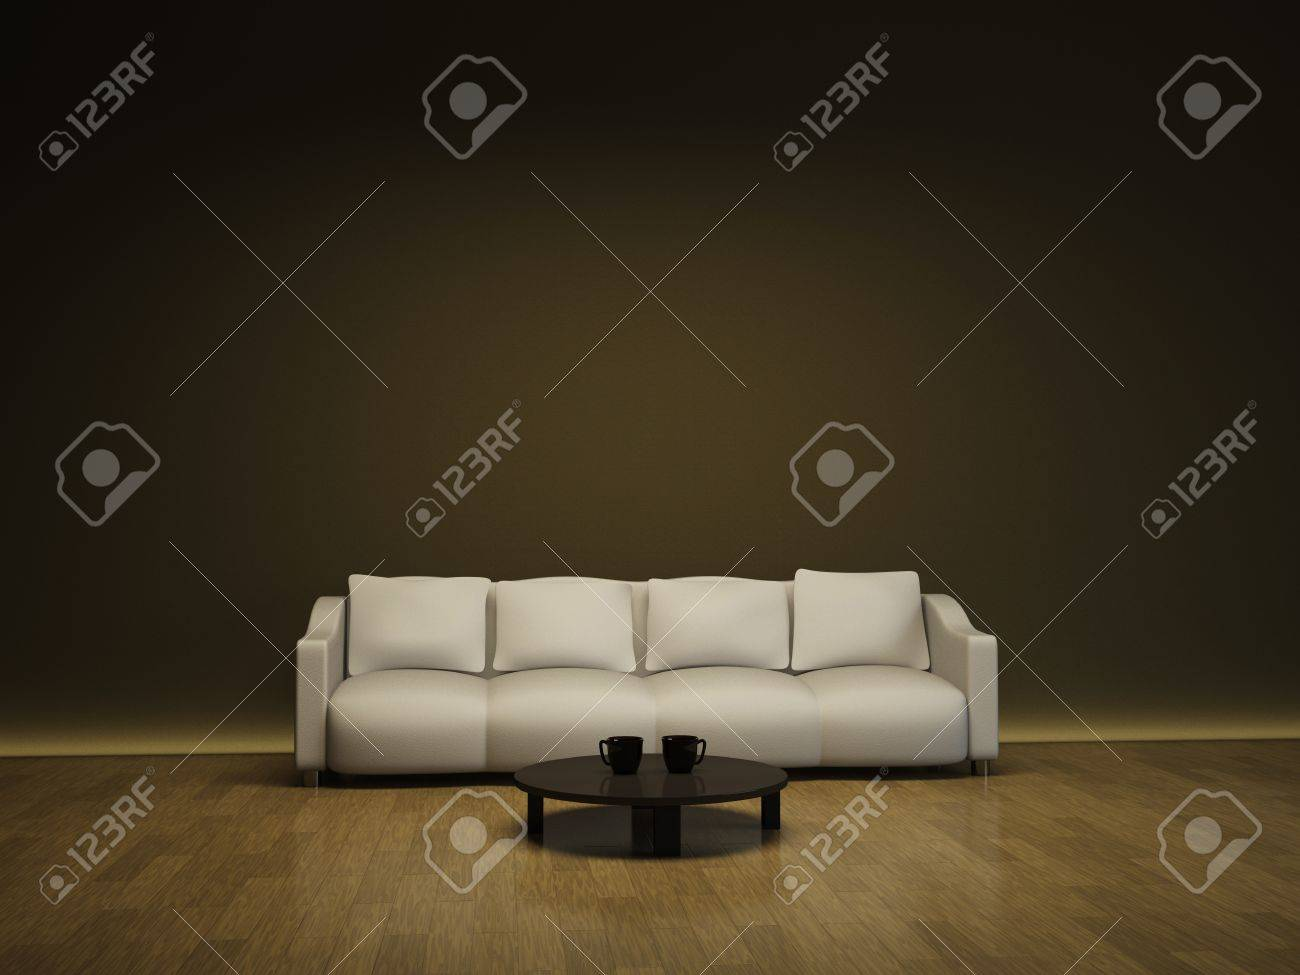 Interior with a white sofa and a brown table Stock Photo - 13148688